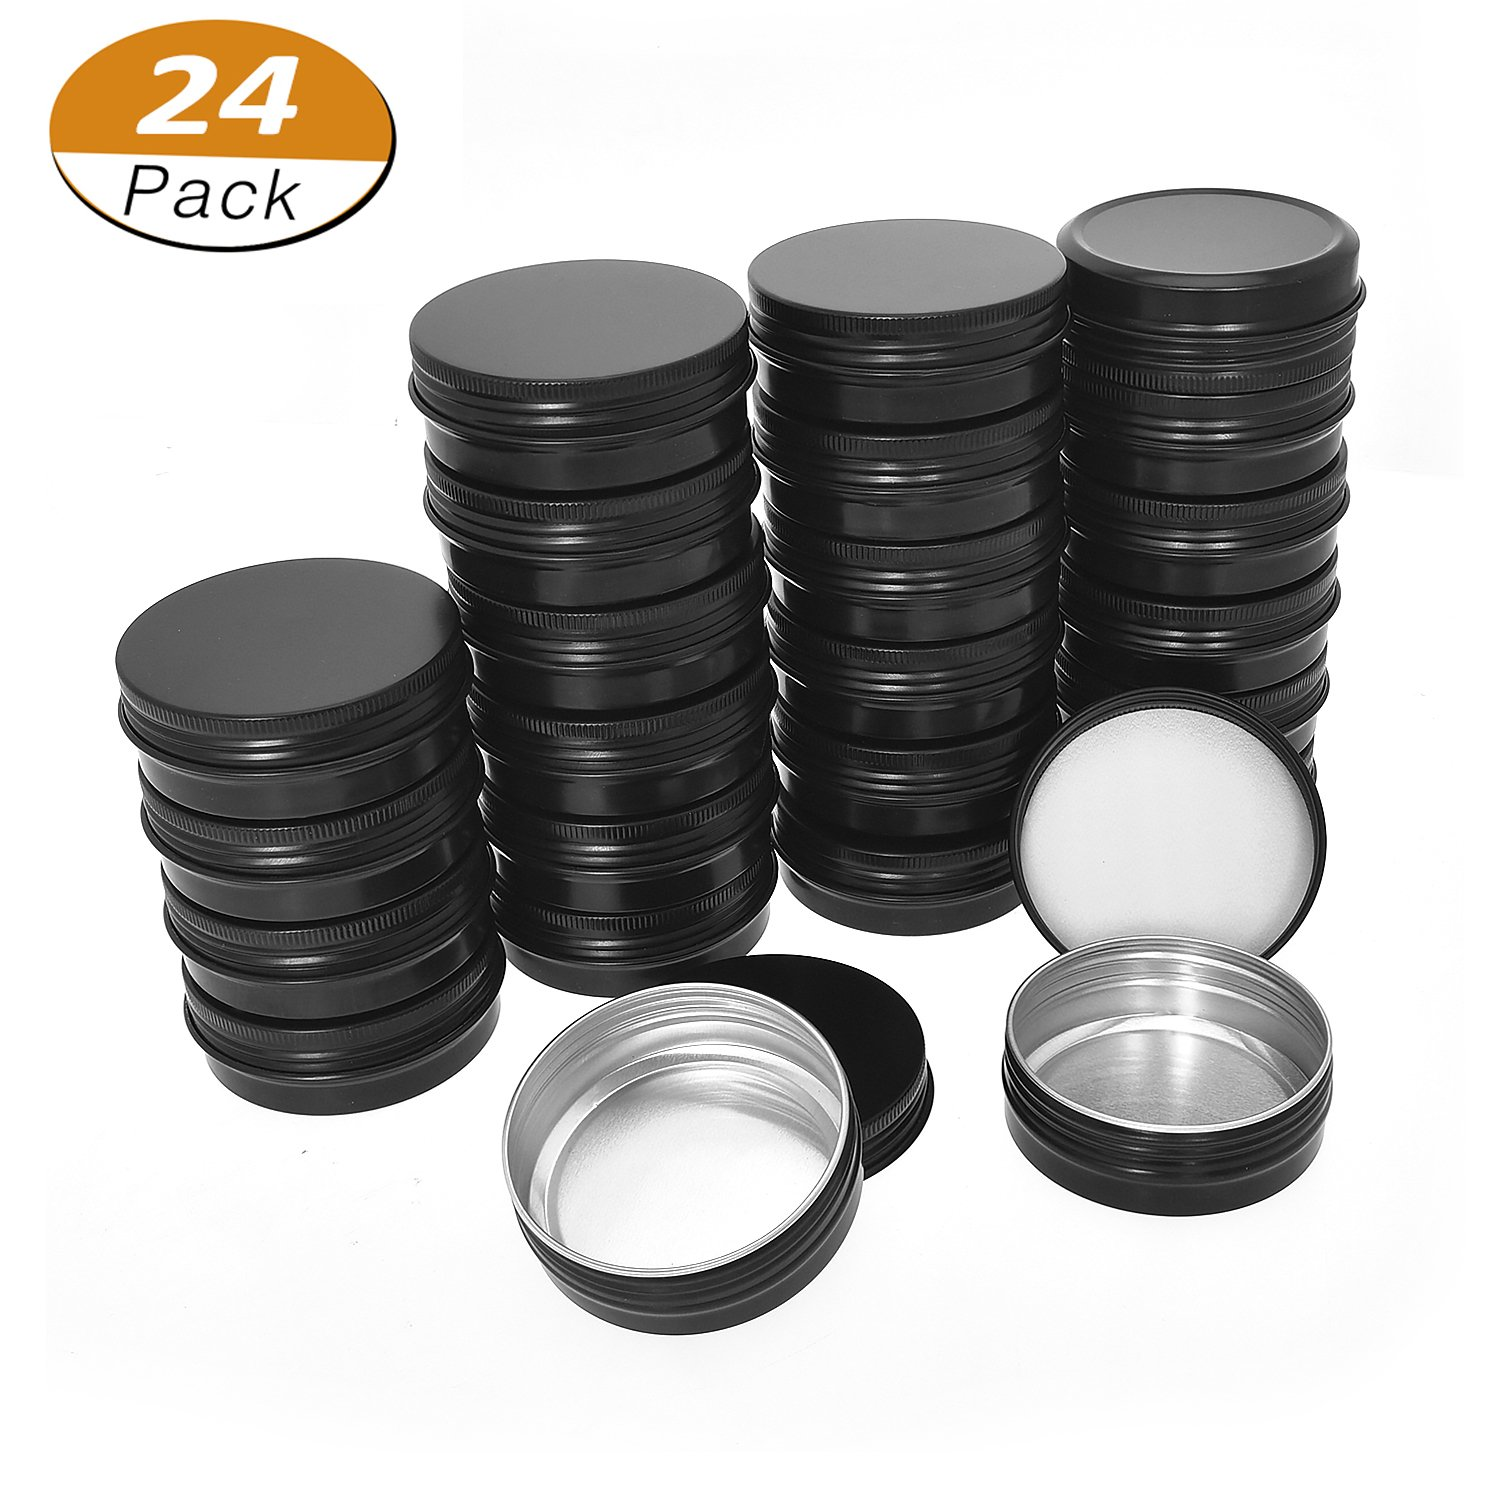 Aybloom Aluminum Tin Cans - 24 Pack 2OZ / 60G Round Metal Tin Container Screw Top Steel Tin Cans Cosmetic Sample Containers Candle Travel Tins